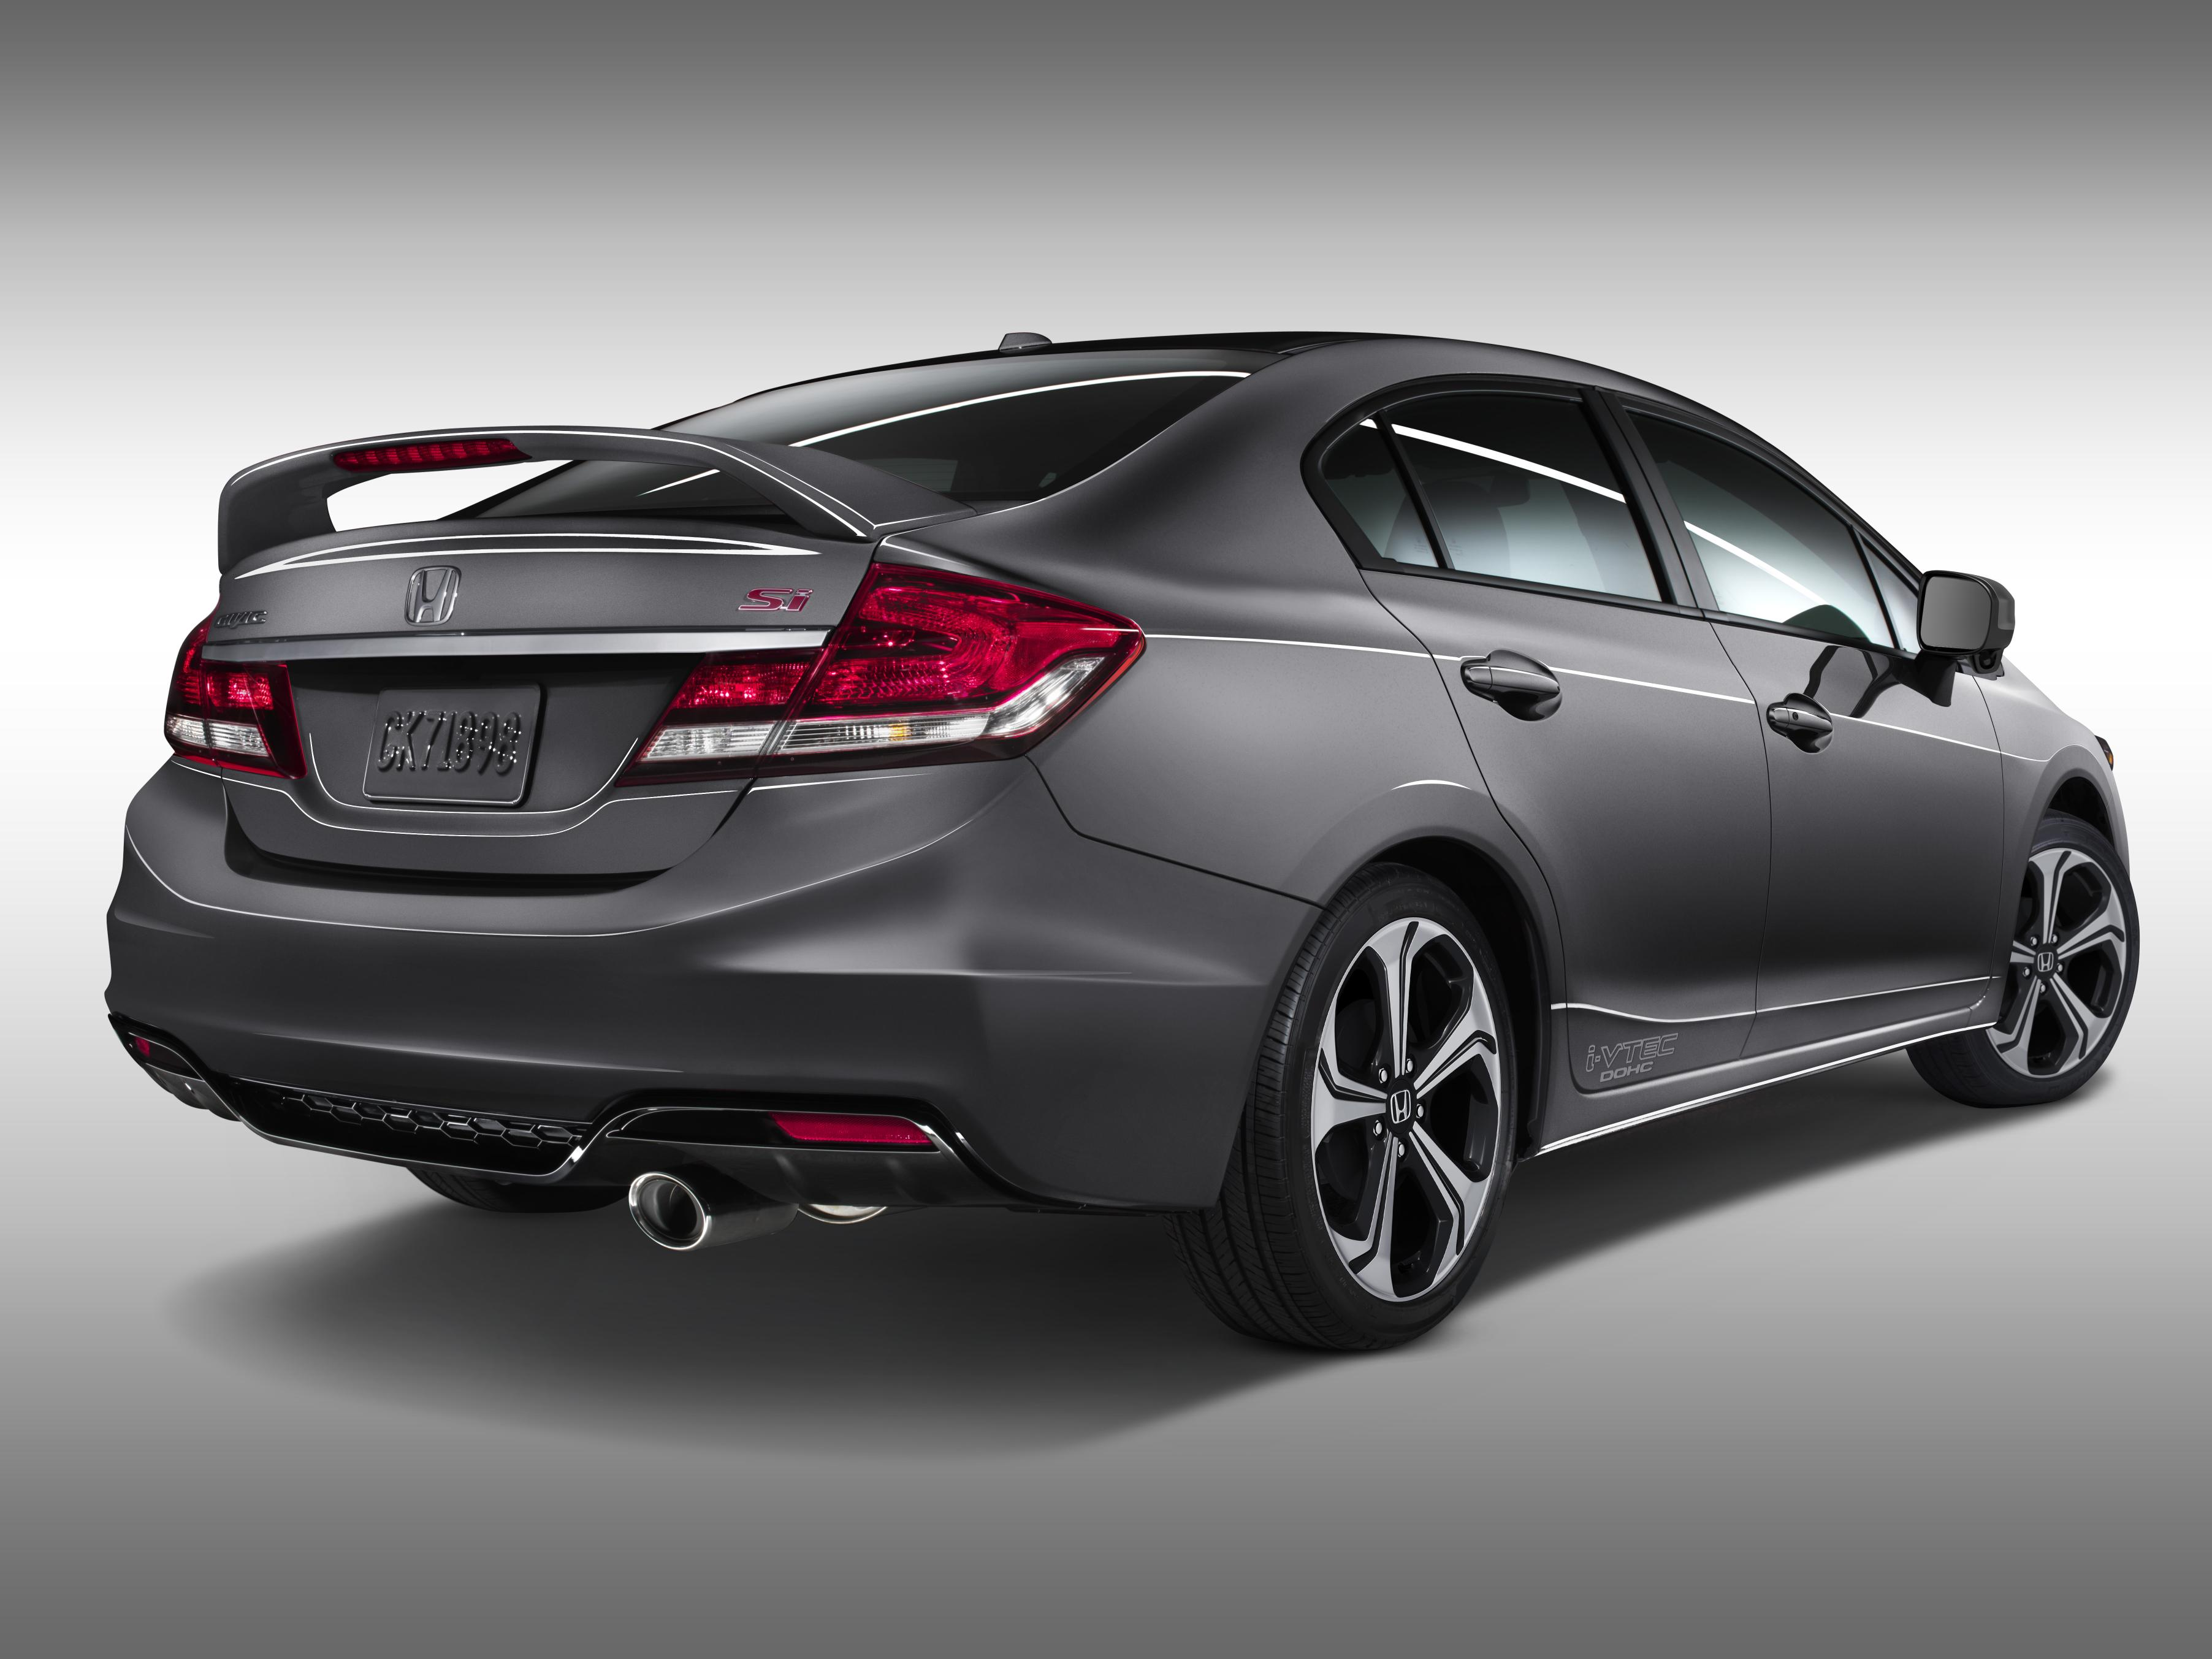 2015 honda civic si is 100 more than the 2014 model autoevolution. Black Bedroom Furniture Sets. Home Design Ideas